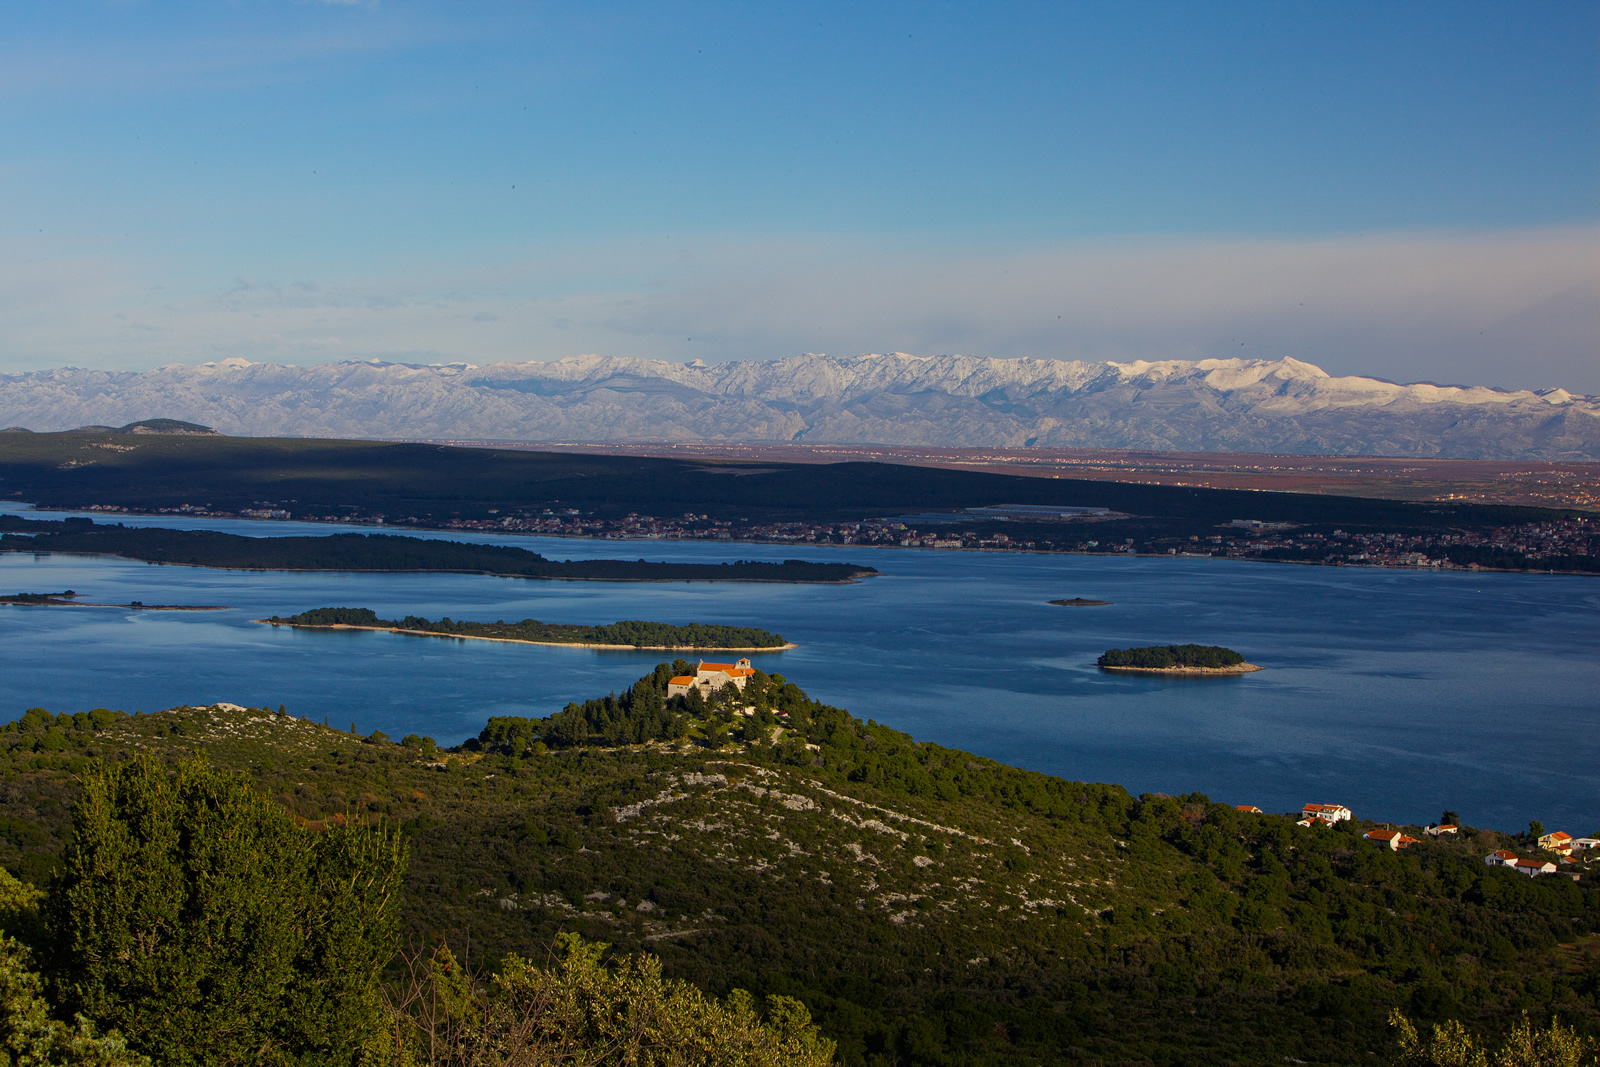 Pasman, Cokovac, boat excursions, activity trips, cycling, walking, hiking, Croatia